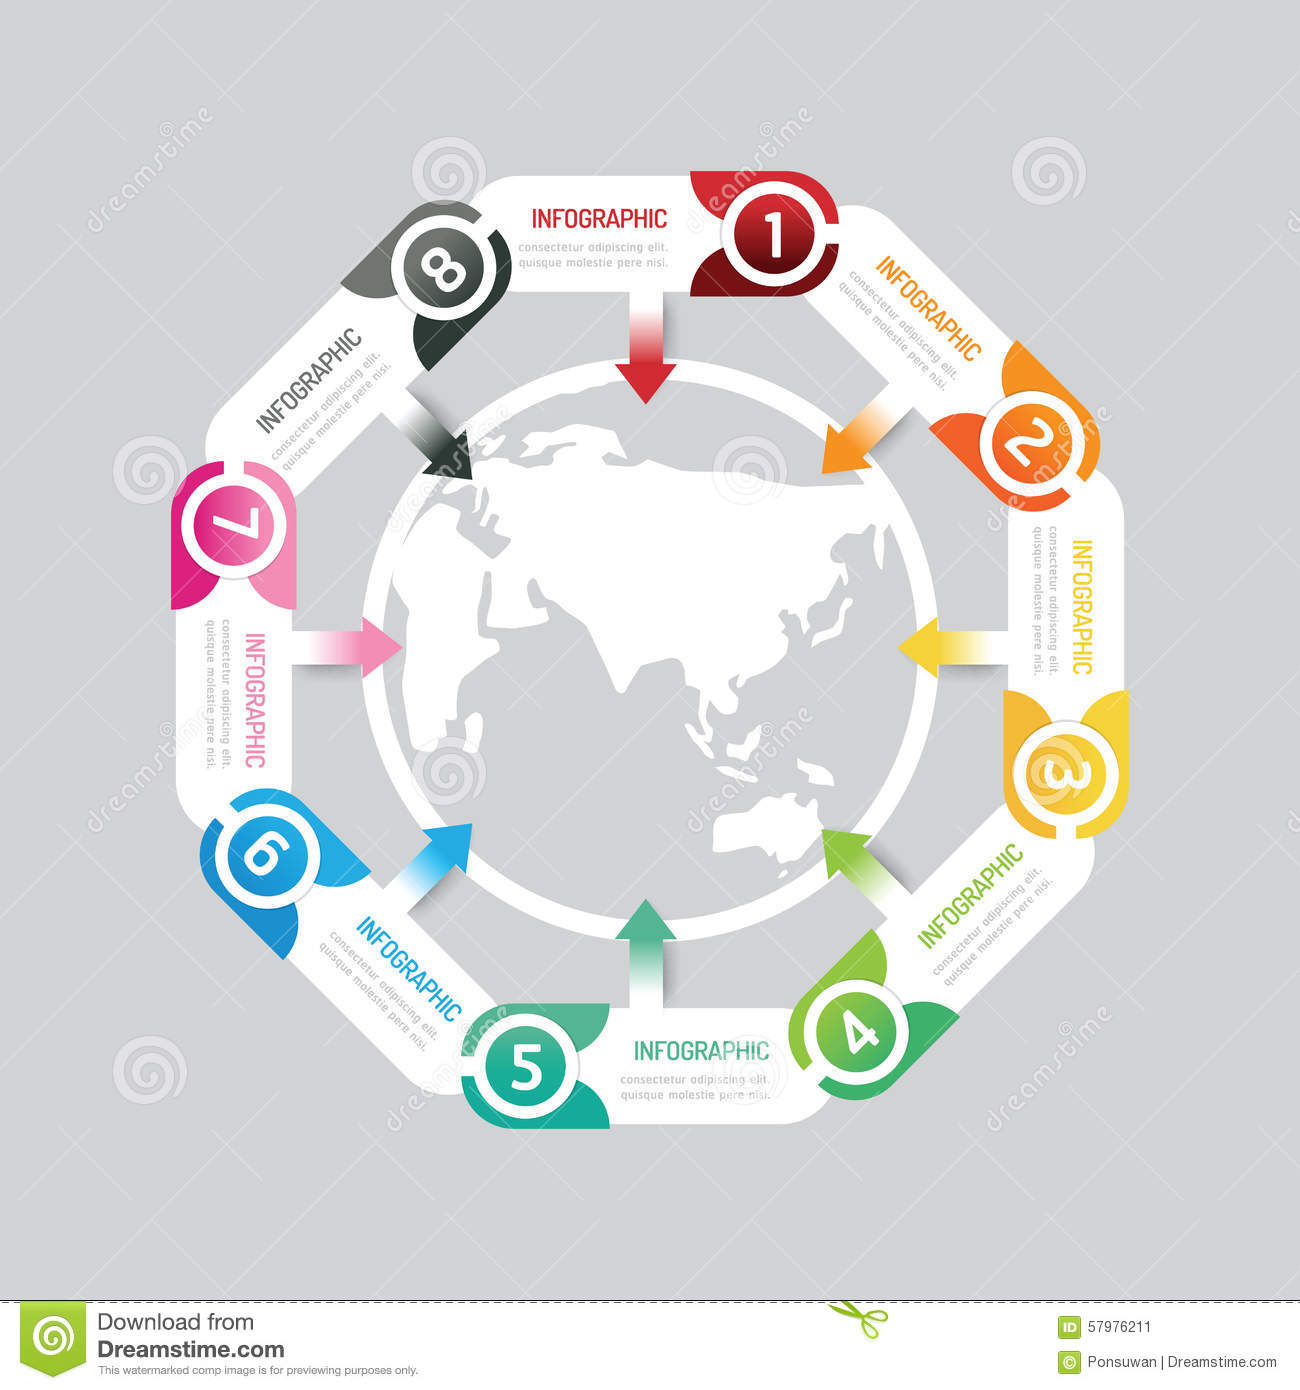 Infographic modern banner button with world map icon design stock download comp gumiabroncs Choice Image